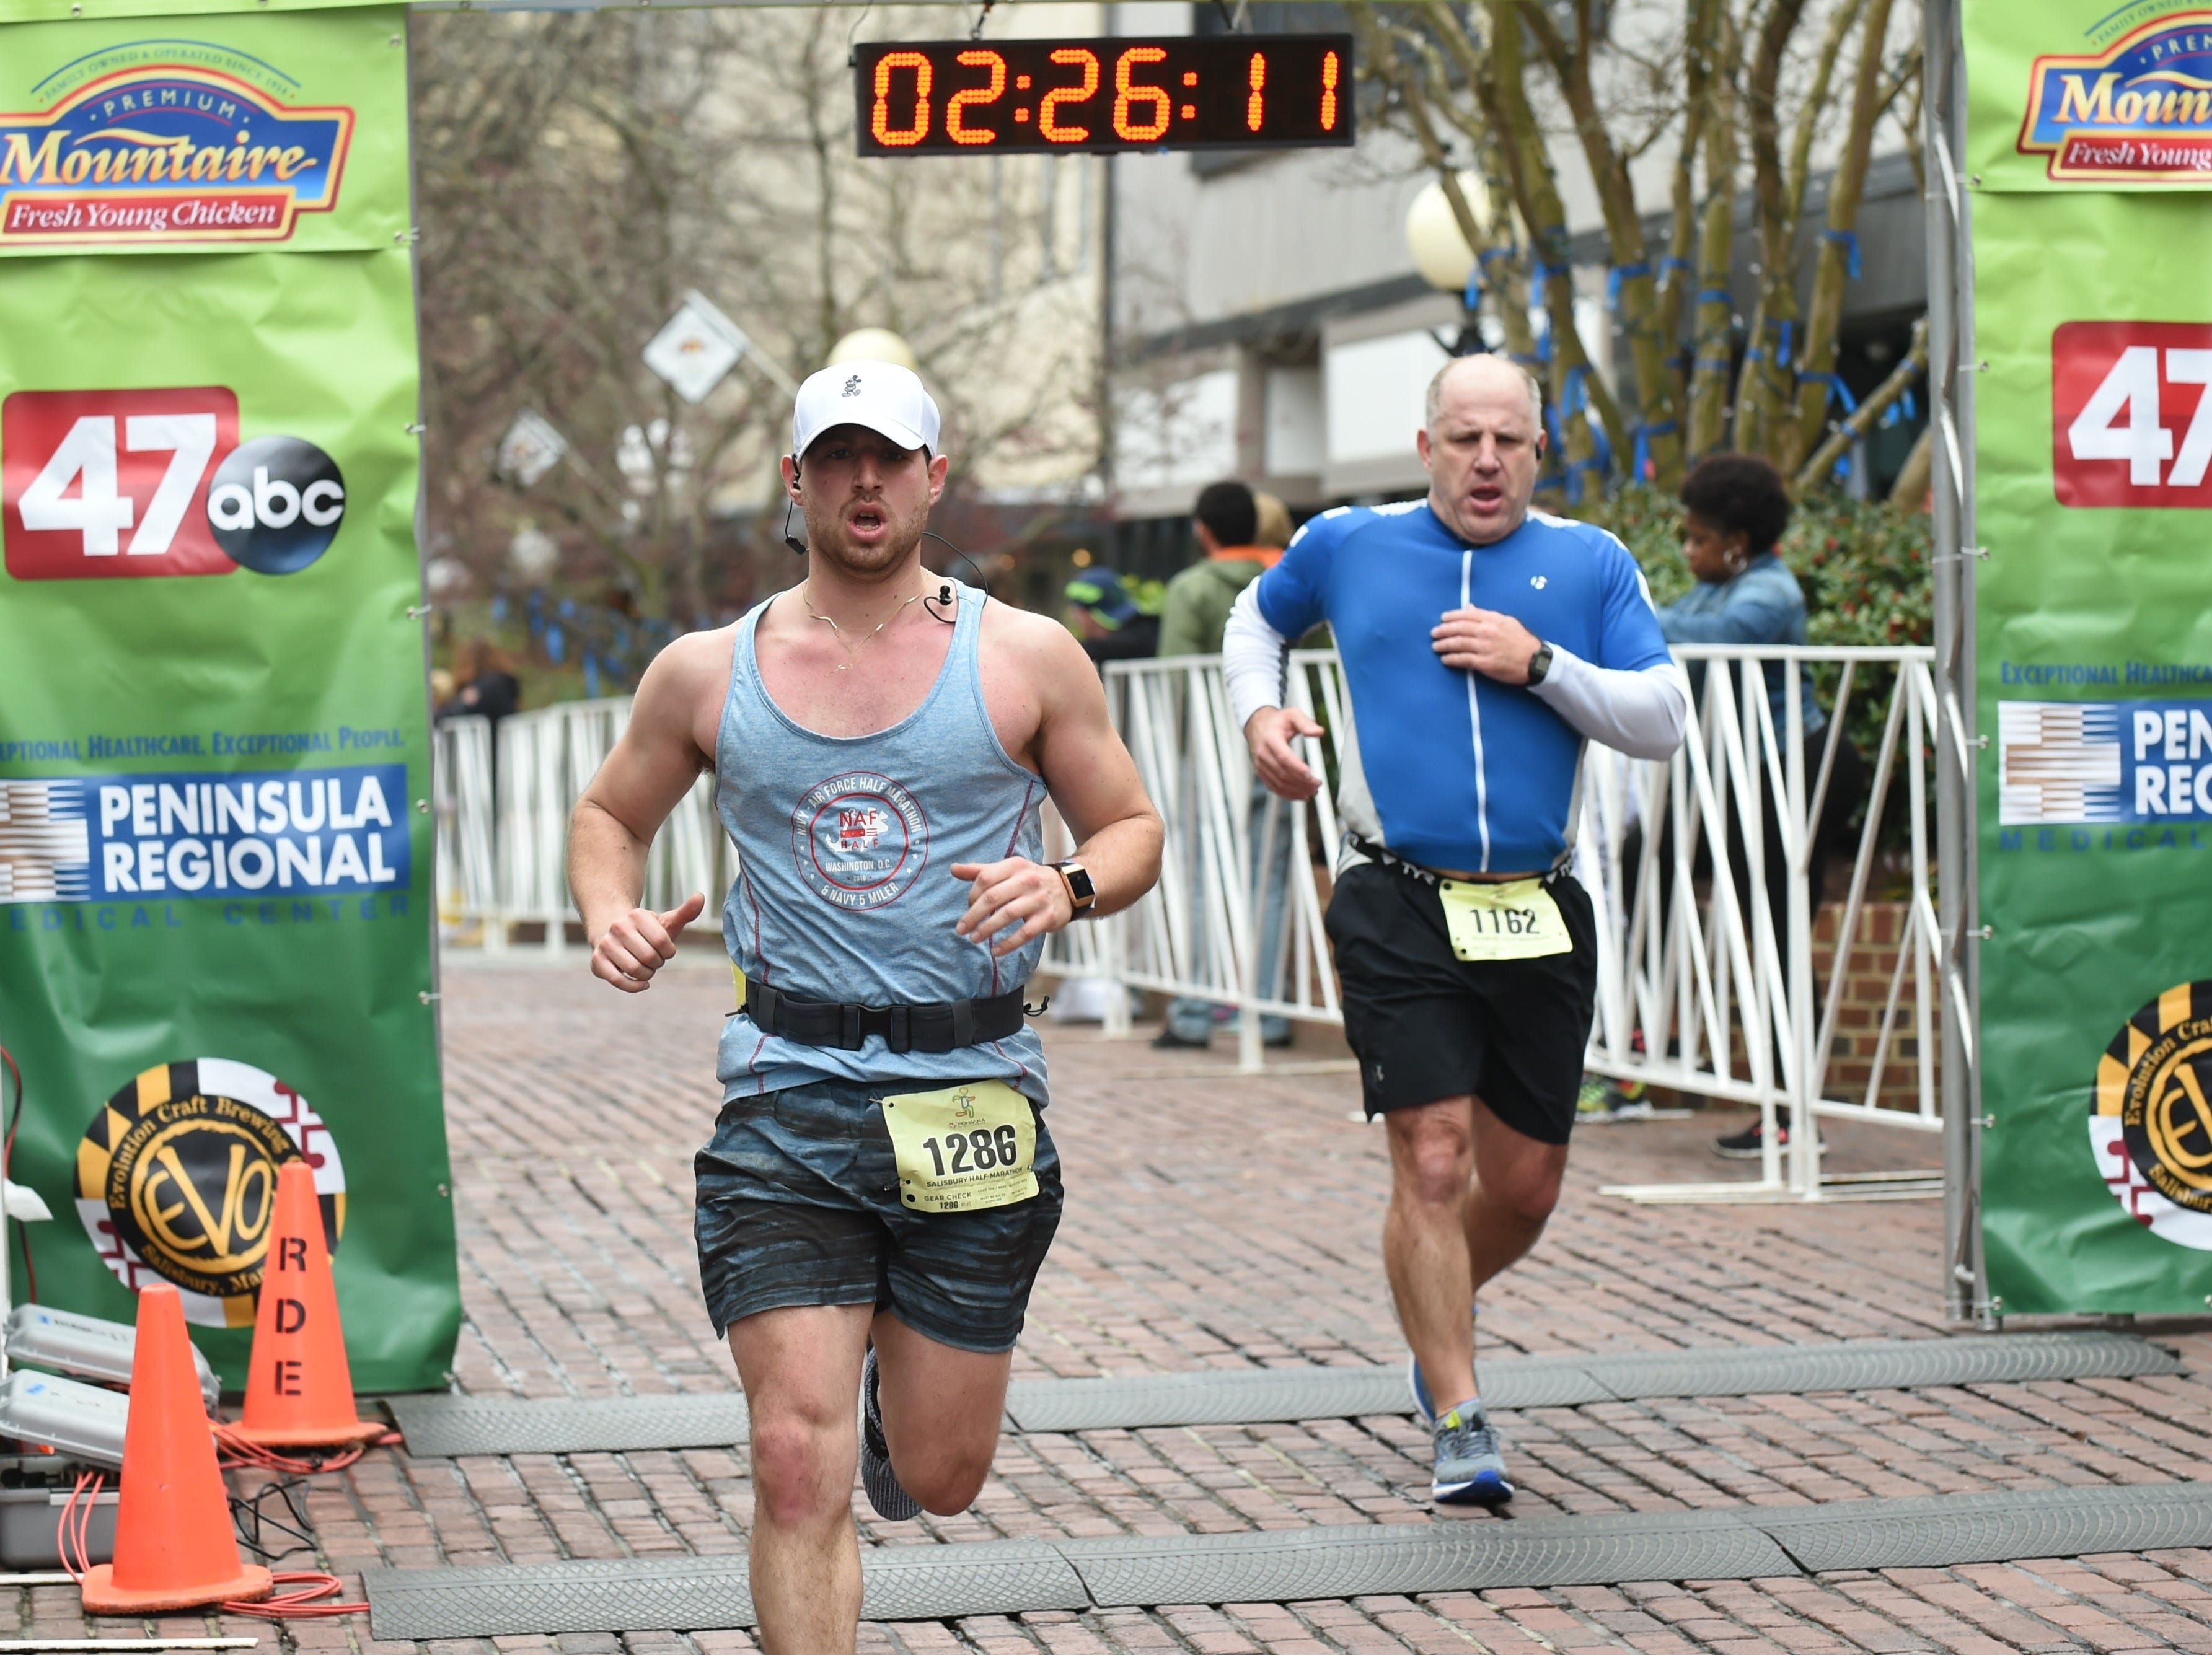 Lee Brill (left) and Rich Hernandez cross the finish line at the 2nd Salisbury Marathon/ Half Marathon/ 5k on Saturday, April 6, 2019.